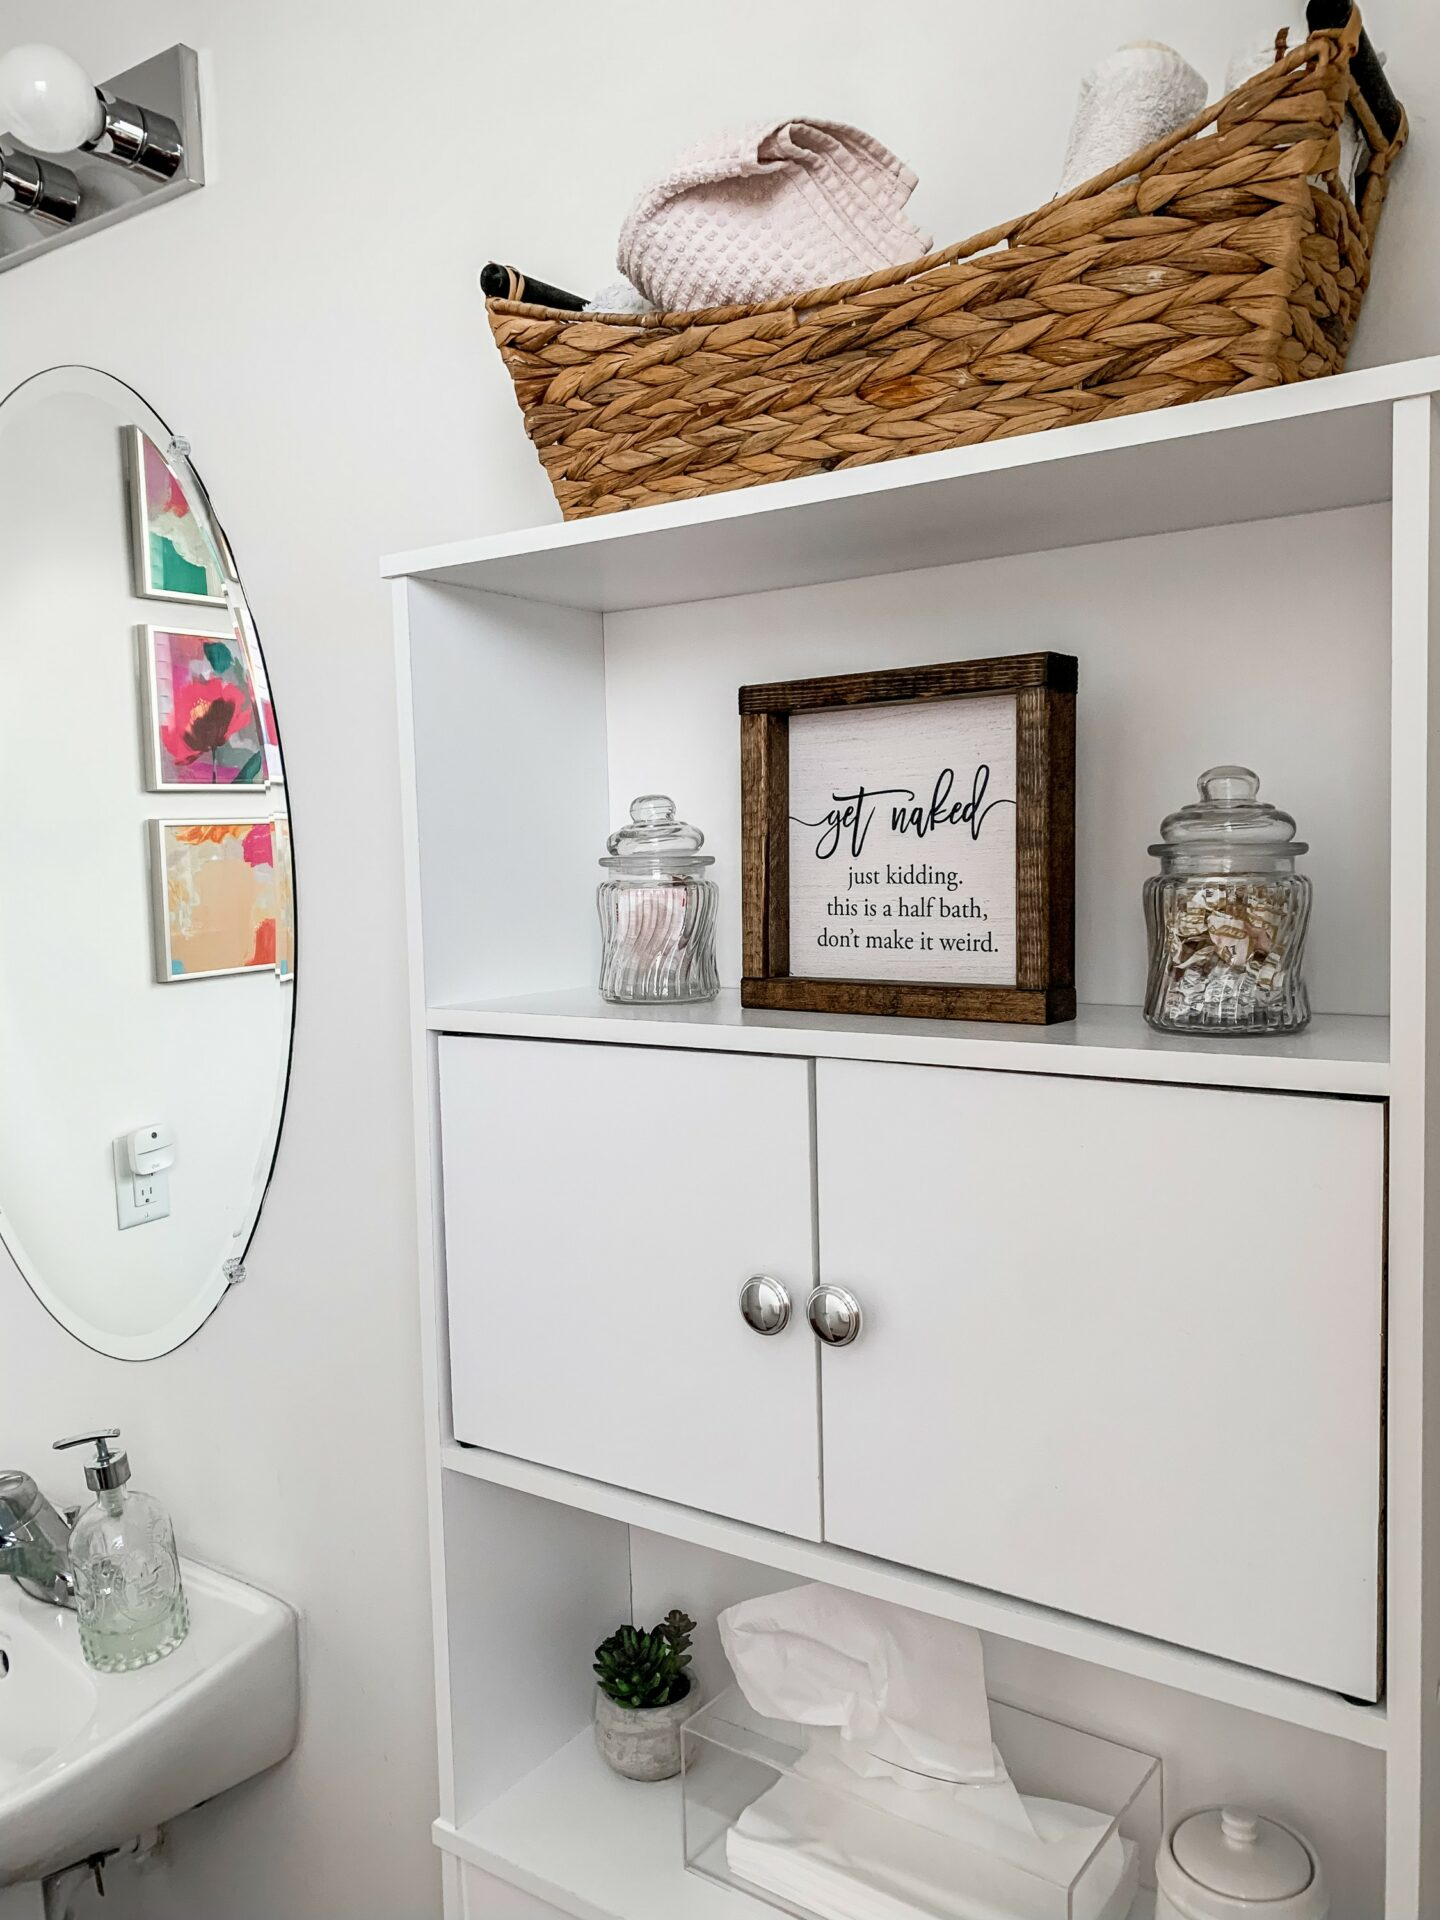 GET NAKED half bath sign - on Coming Up Roses